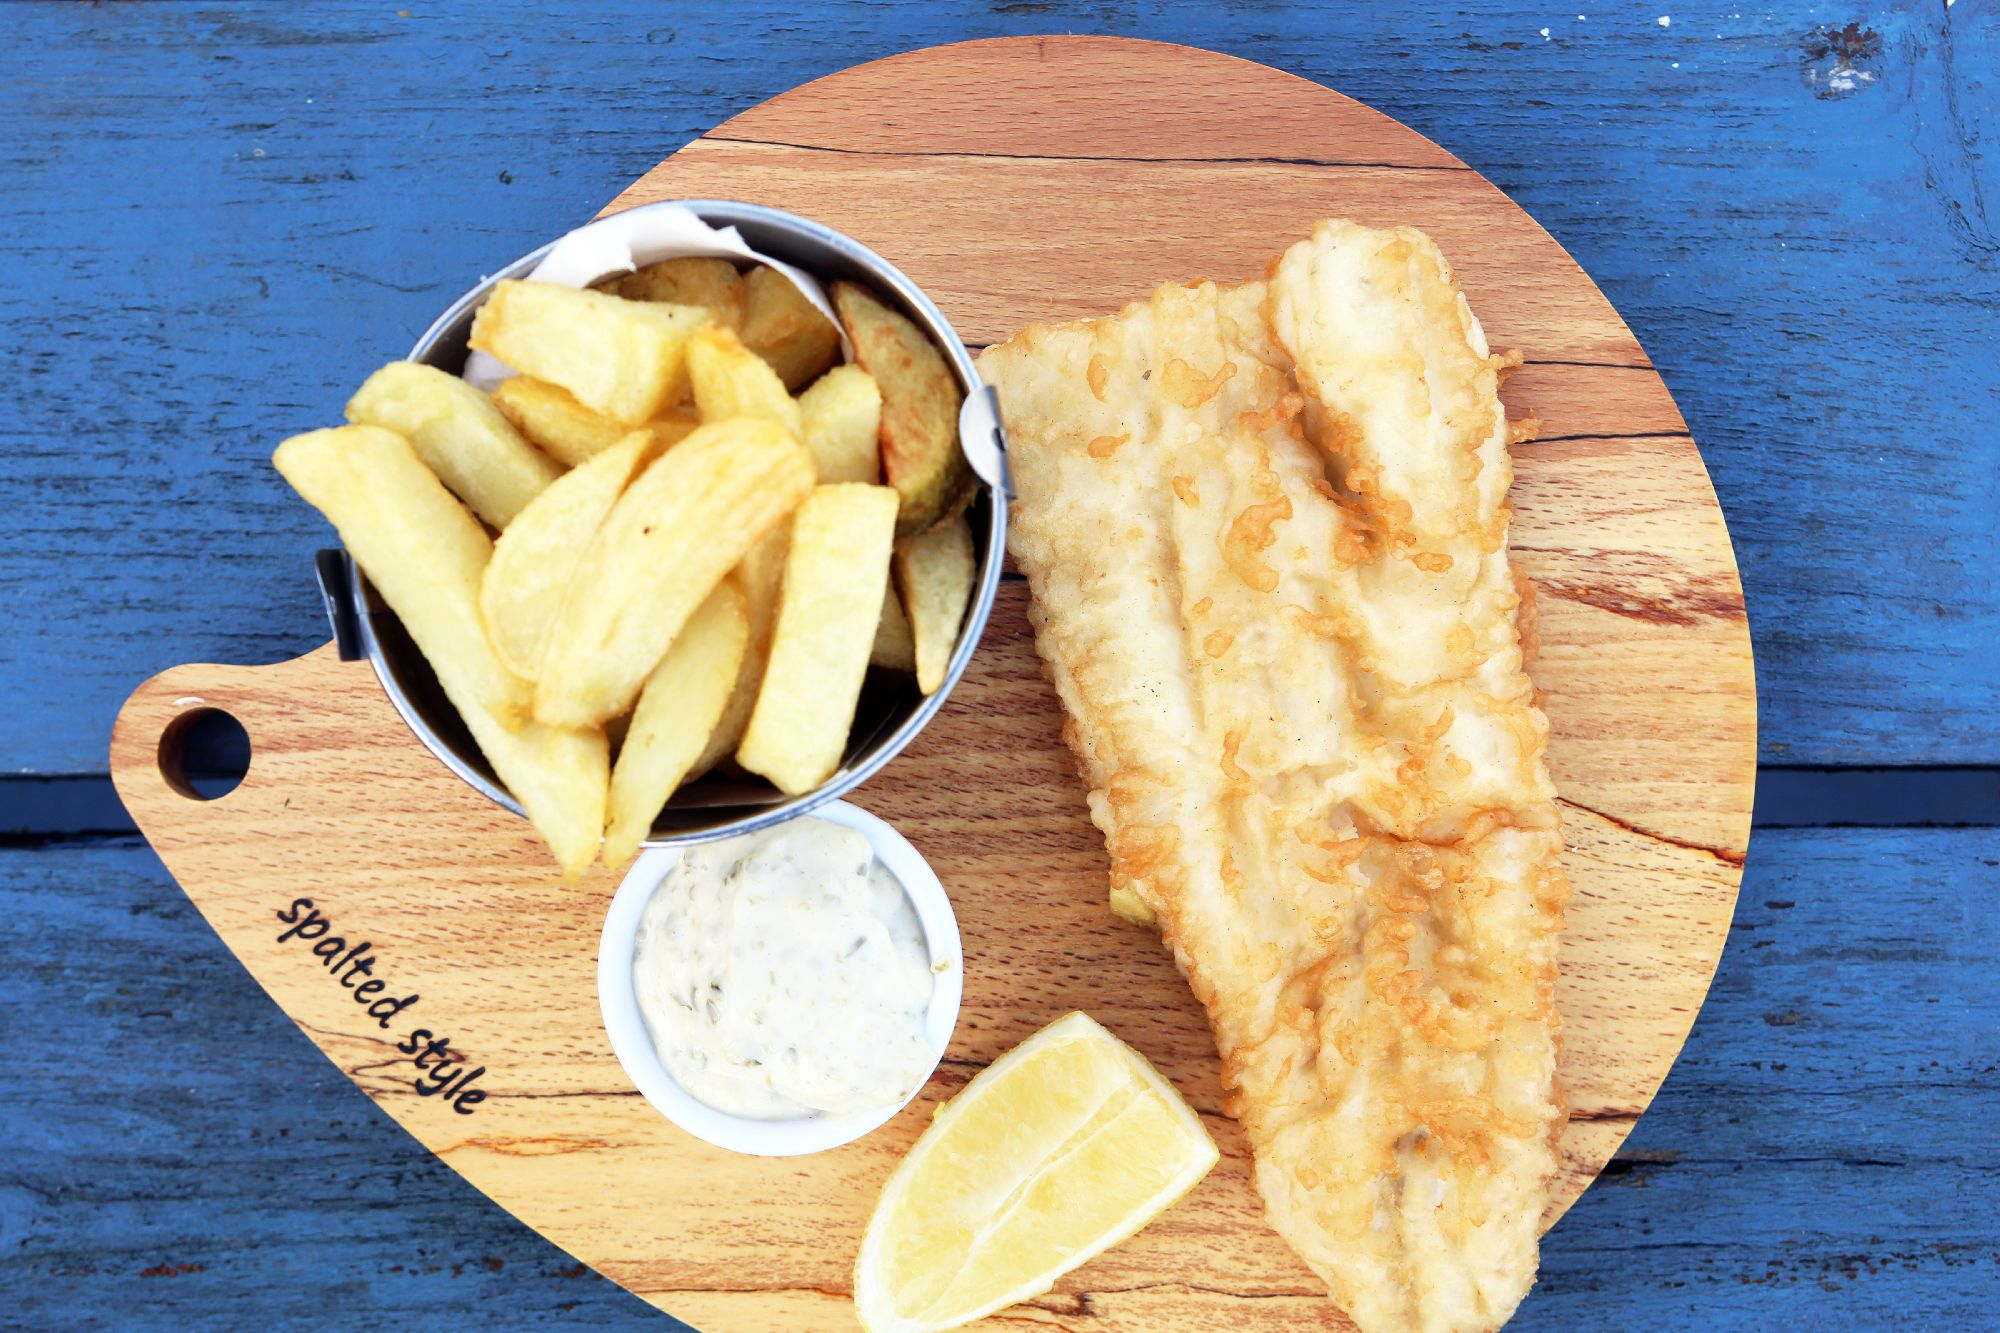 Clogherhead Fish 'n' Chips